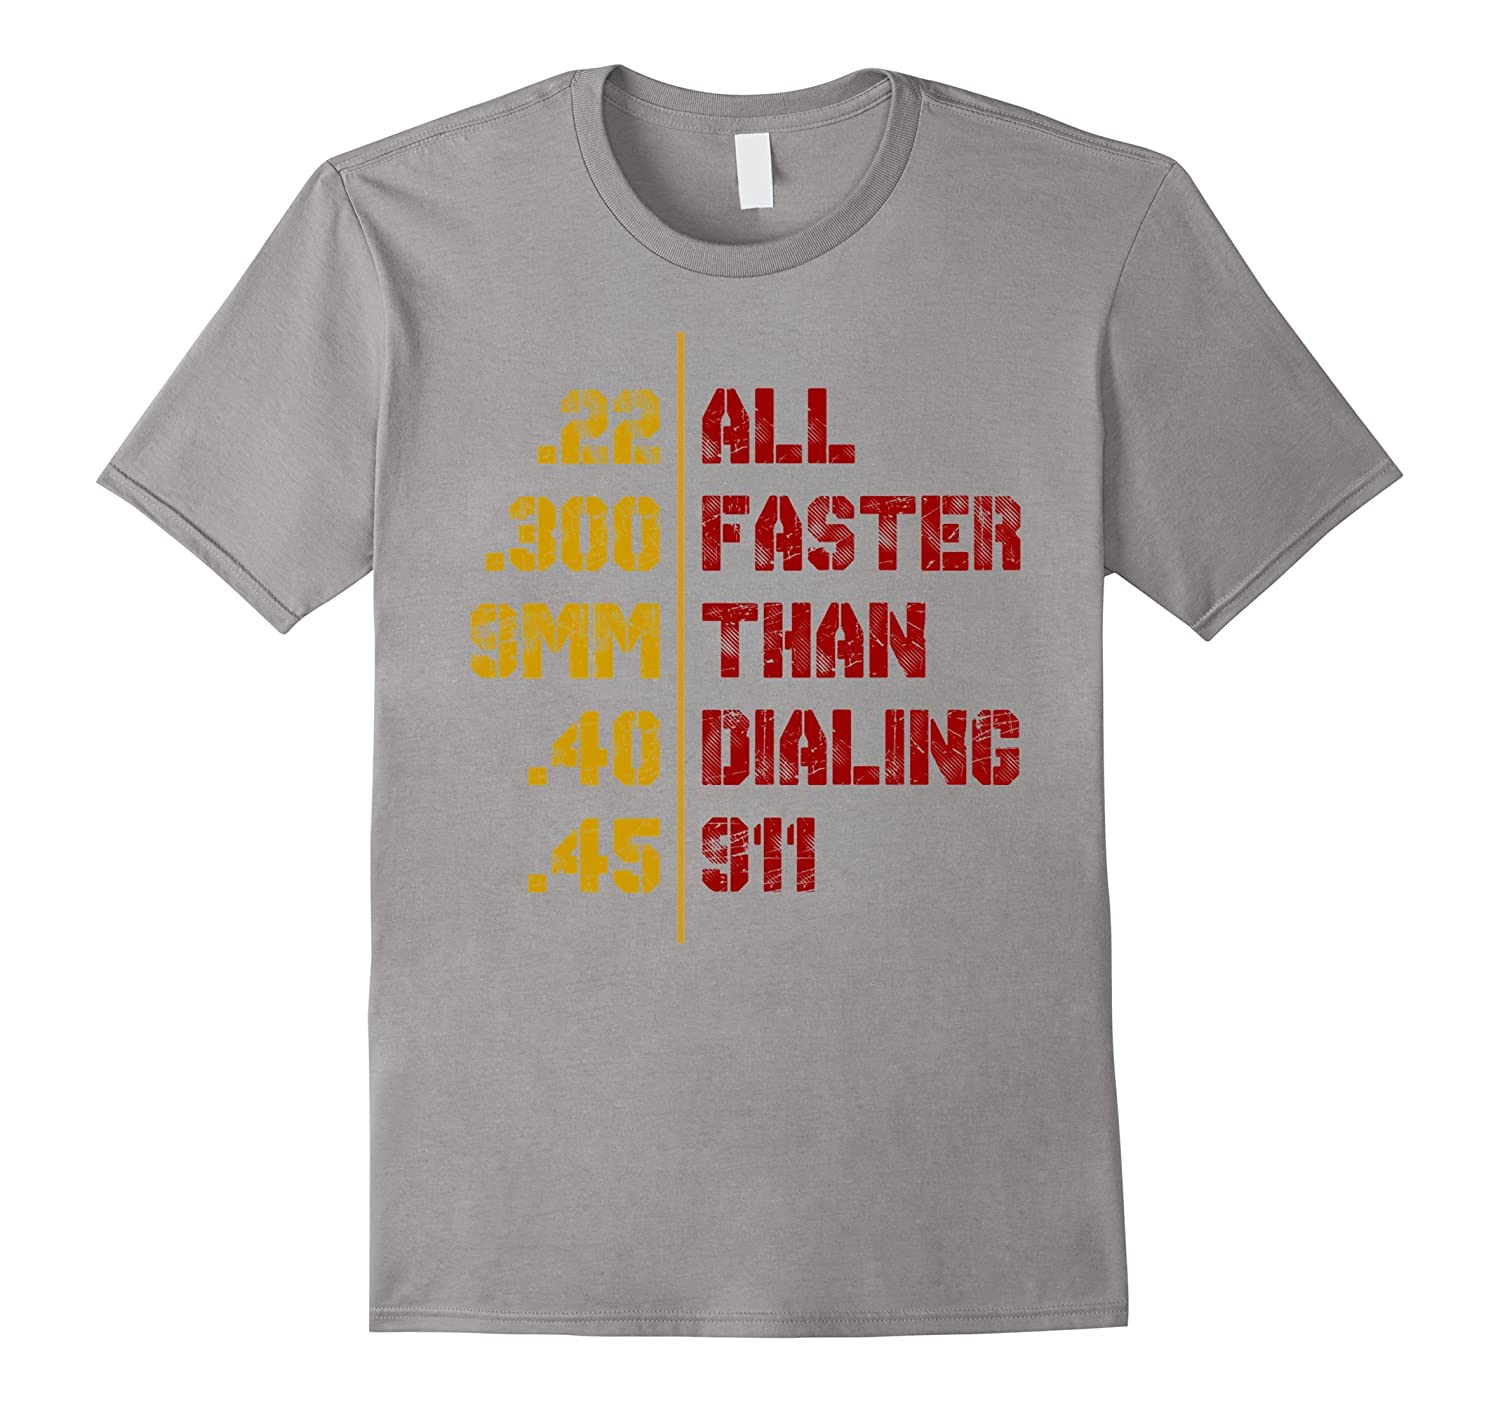 All faster than dialing 911 - Funny gun saying shirt-TD